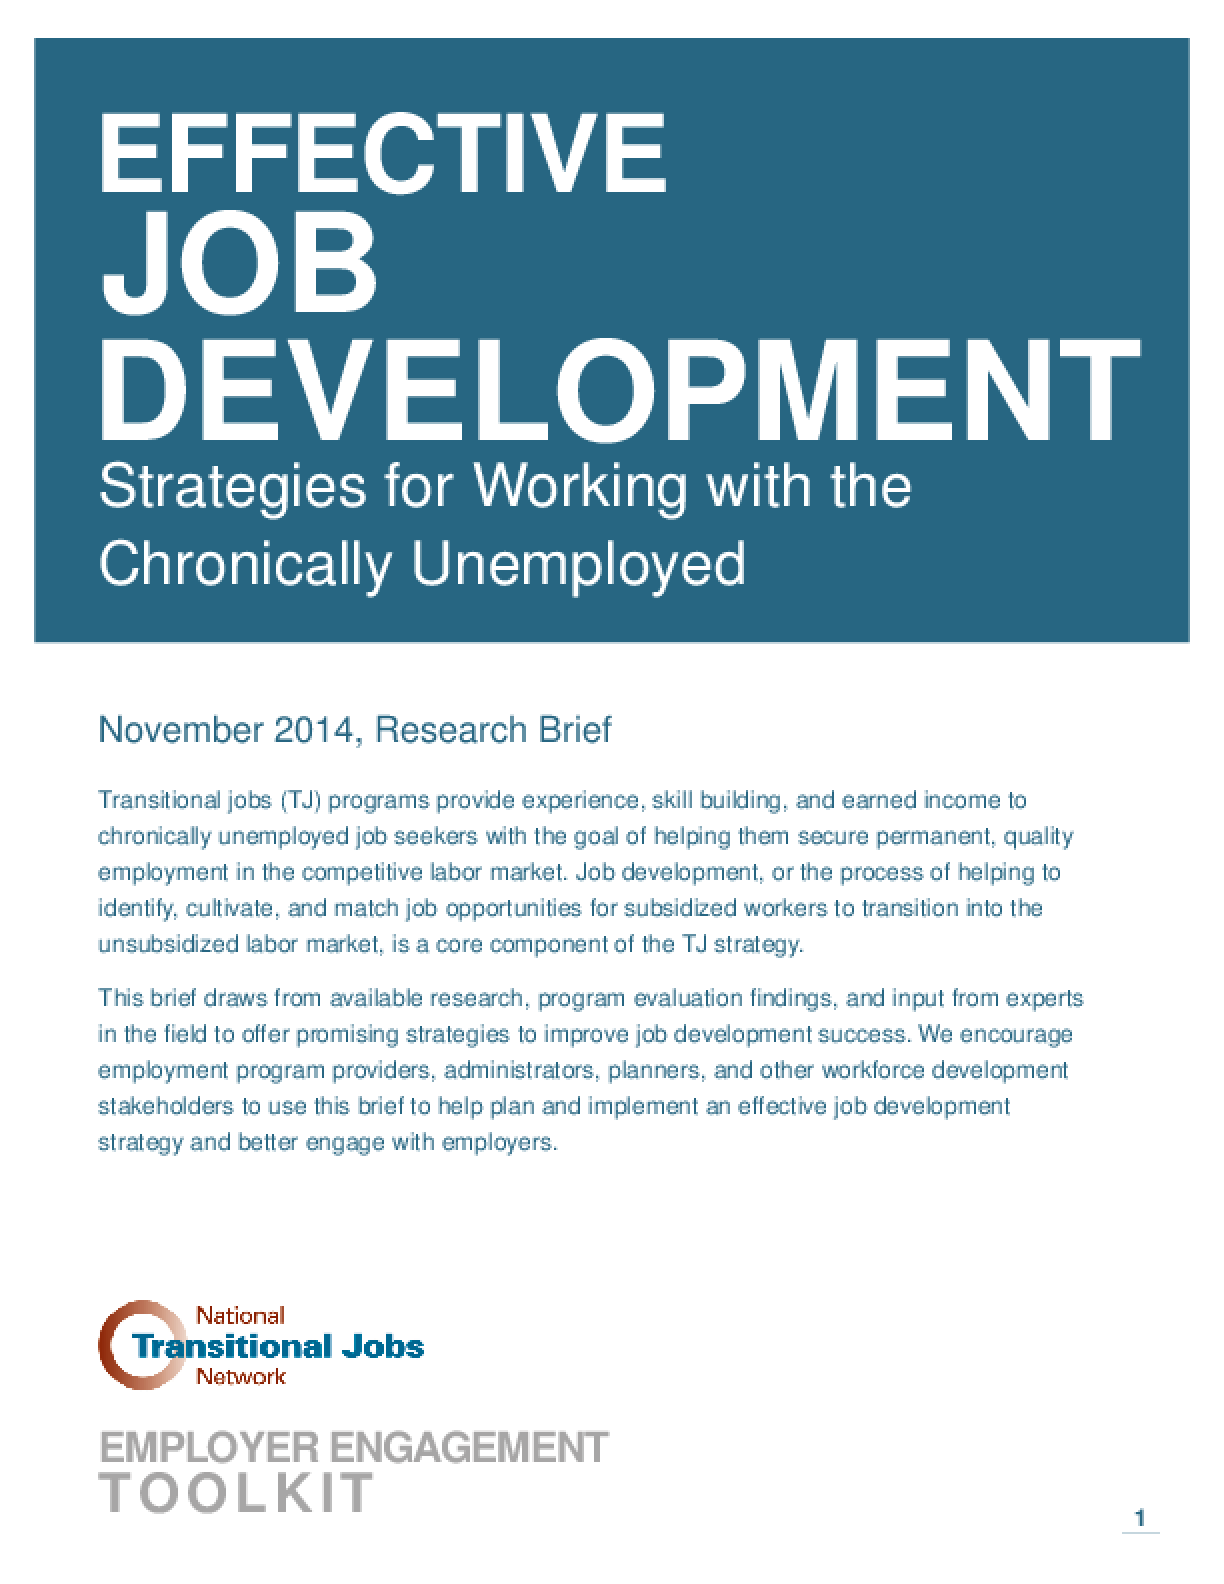 Effective Job Development: Strategies for Working with the Chronically Unemployed